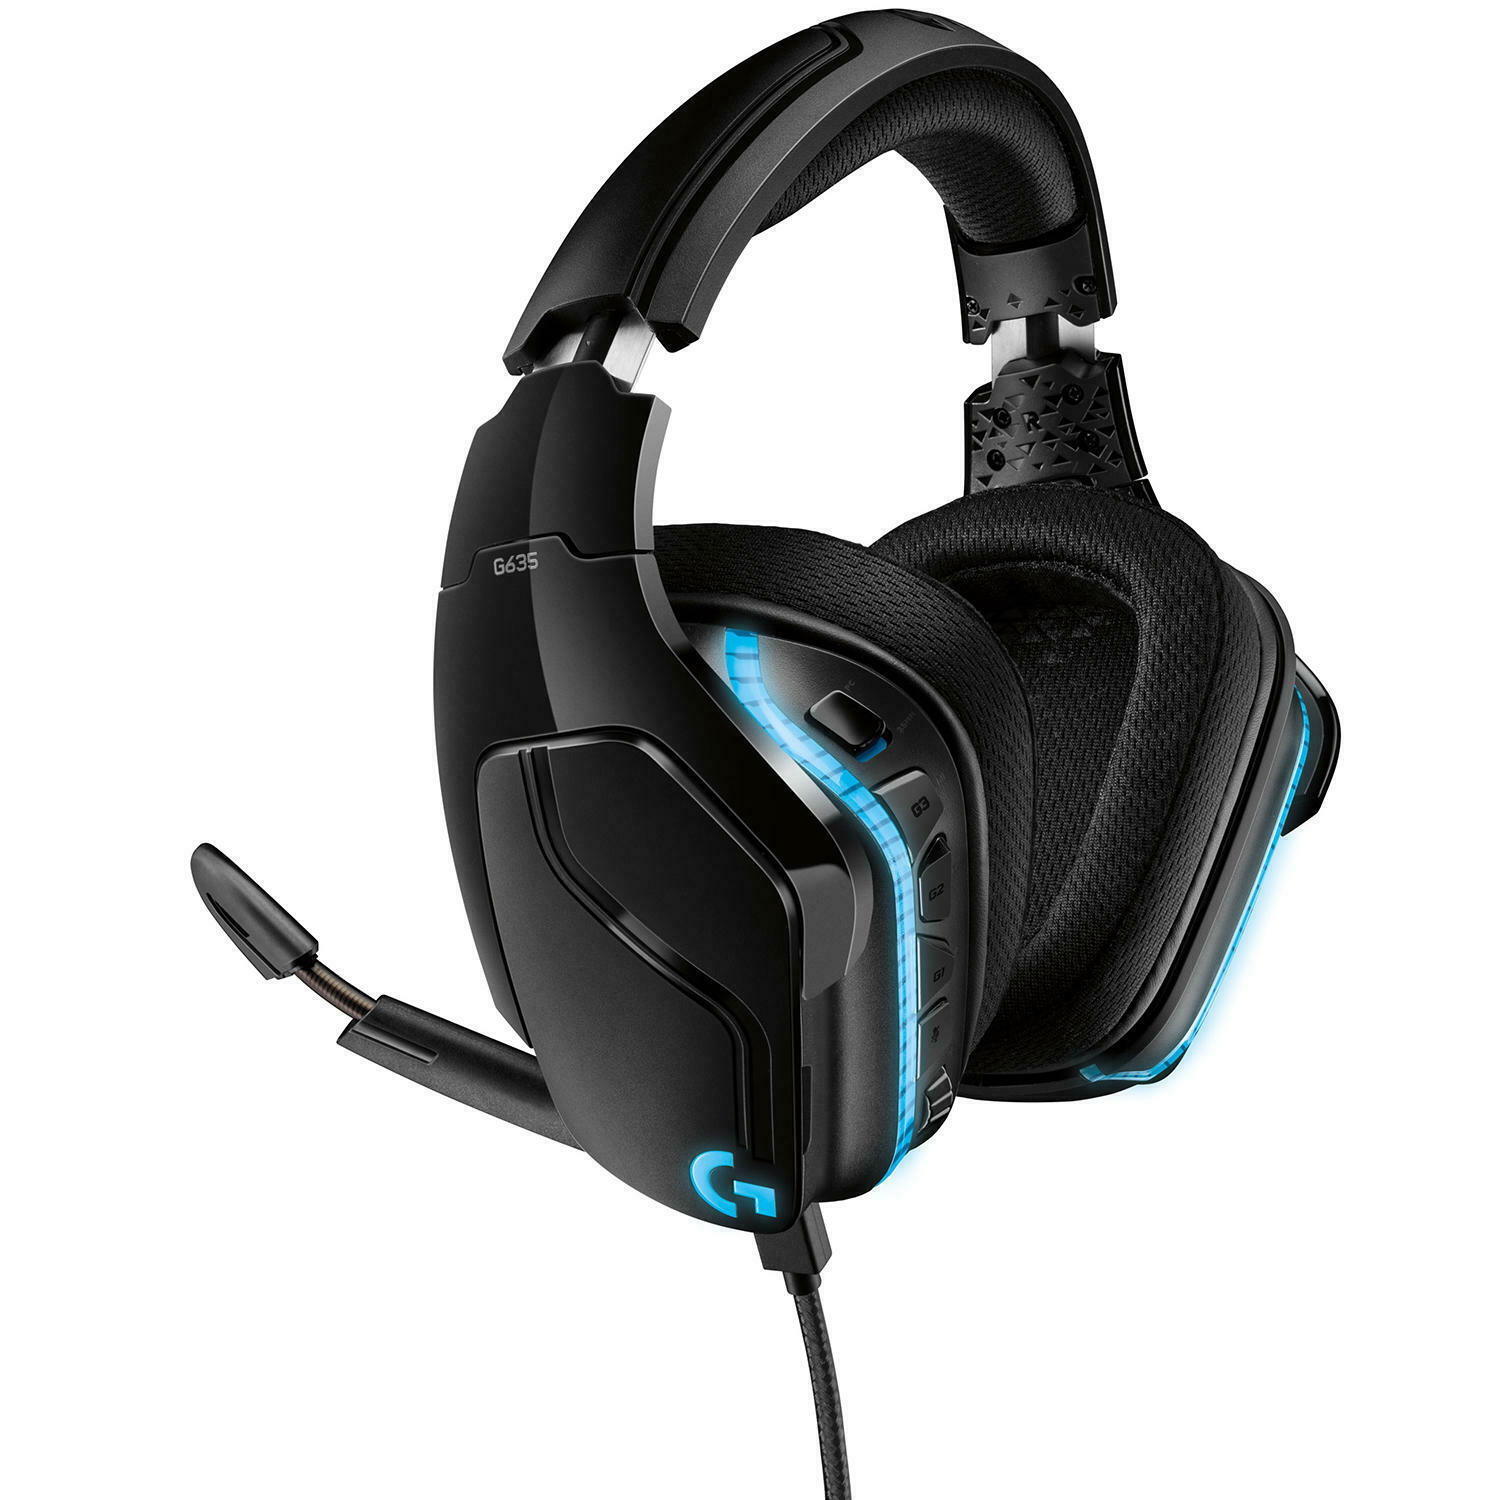 Primary image for Logitech G635 DTS, X 7.1 Surround Sound LIGHTSYNC RGB PC Gaming Headset